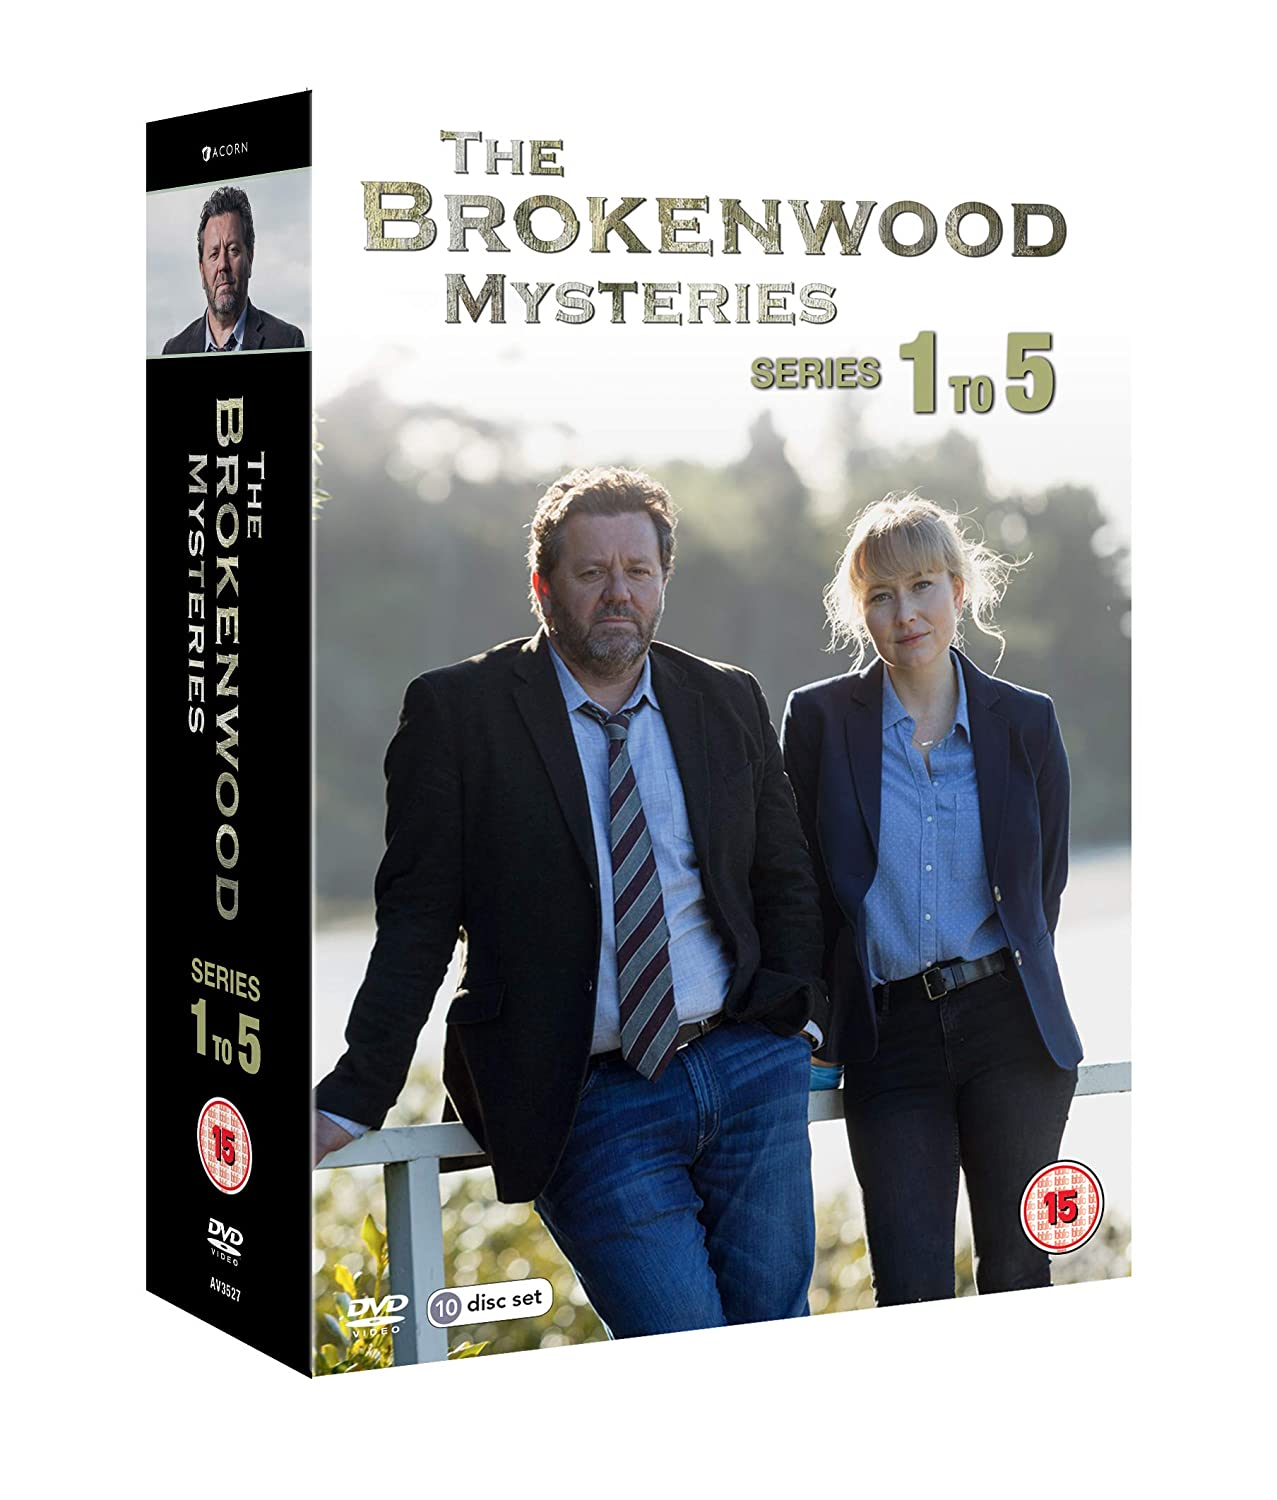 The Brokenwood Mysteries: Series 1-5 Box Set